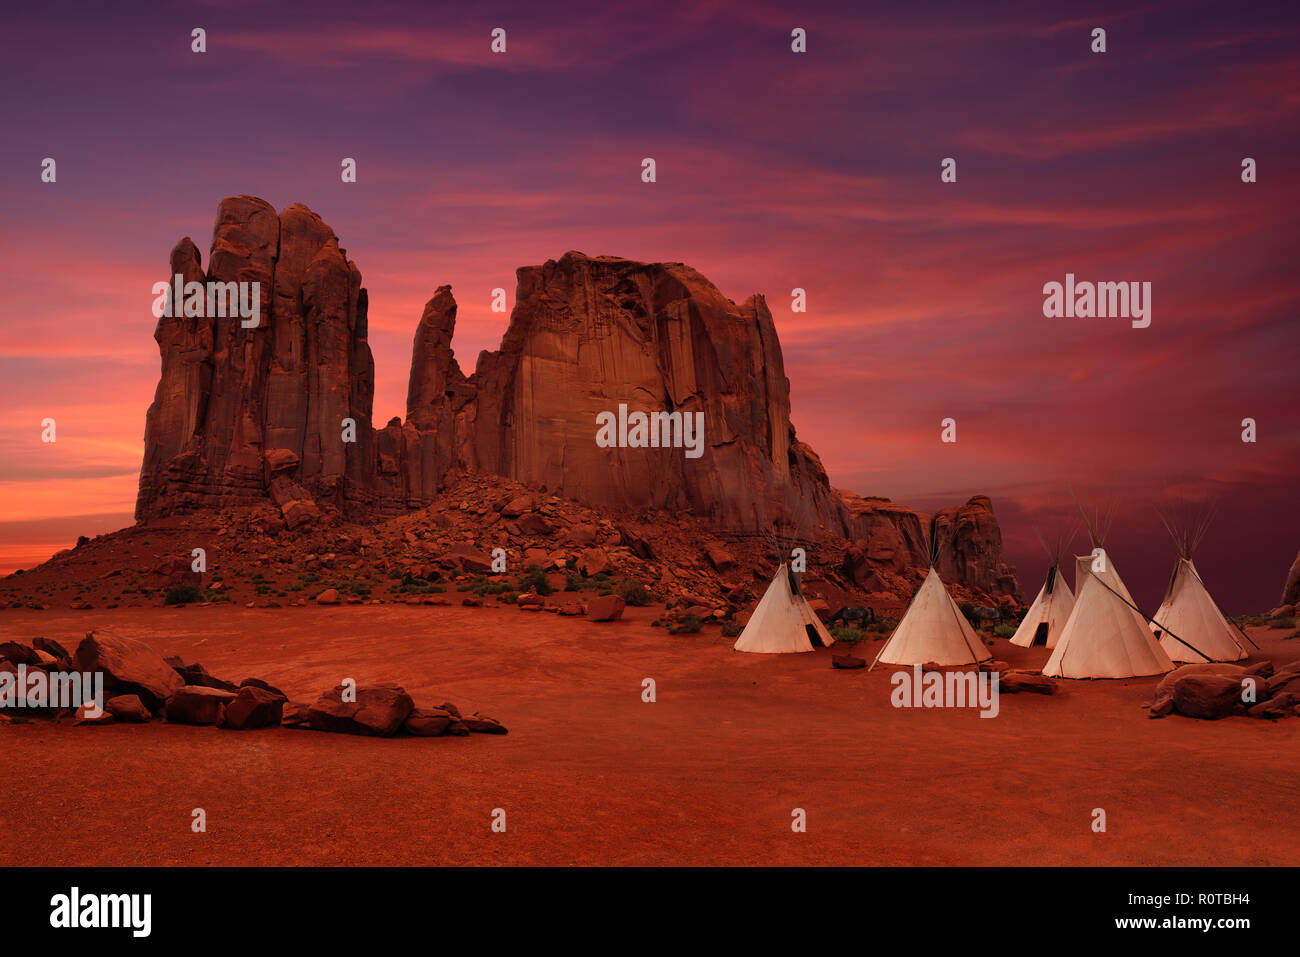 Wigwams/tepees of native Americans in Monument Valley at sunset, Arizona-Utah border, USA - Stock Image